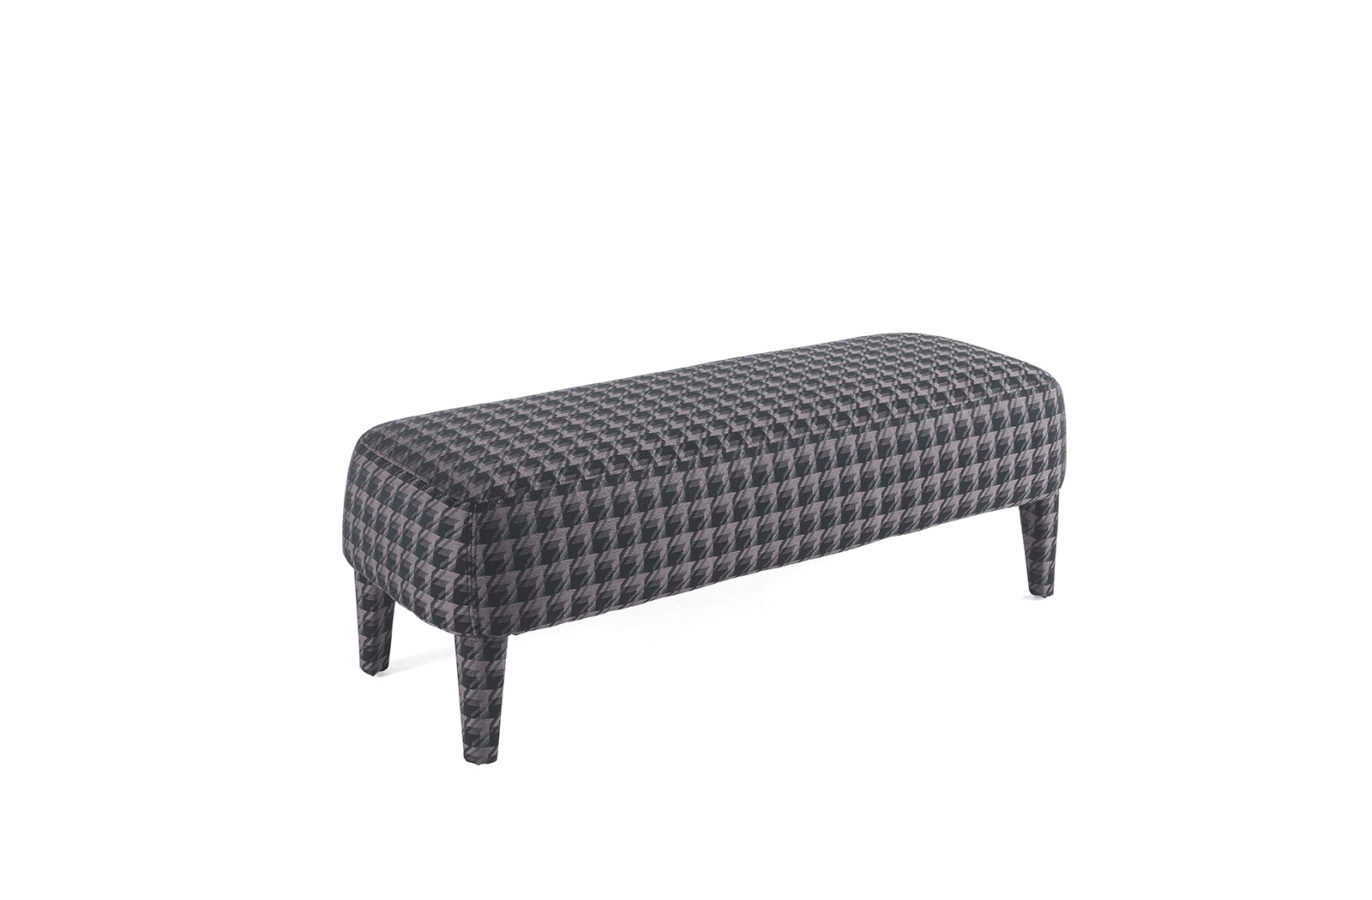 Gianfranco Ferre Home Mini Bench